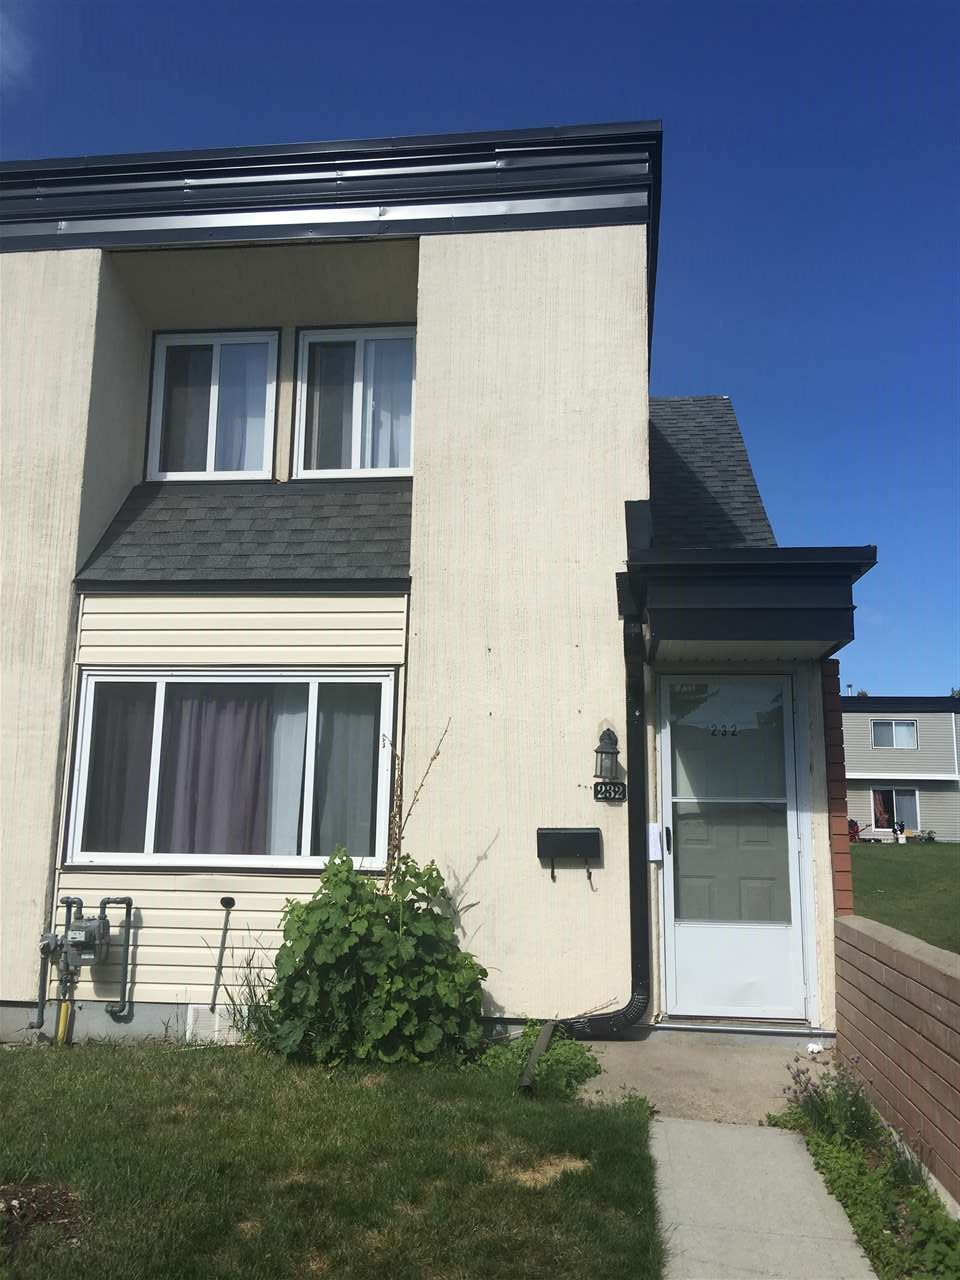 A perfect size townhouse condo with 3 spacious bedrooms and 1.5 baths. Comes with all appliances, including a dishwasher. Unit is in good shape. Partially finished basement that is great for a movie room, gym, or flex room, etc. One parking stall. Close to No Frills, Shopping Mall, Transit, Restaurants, Schools, etc.